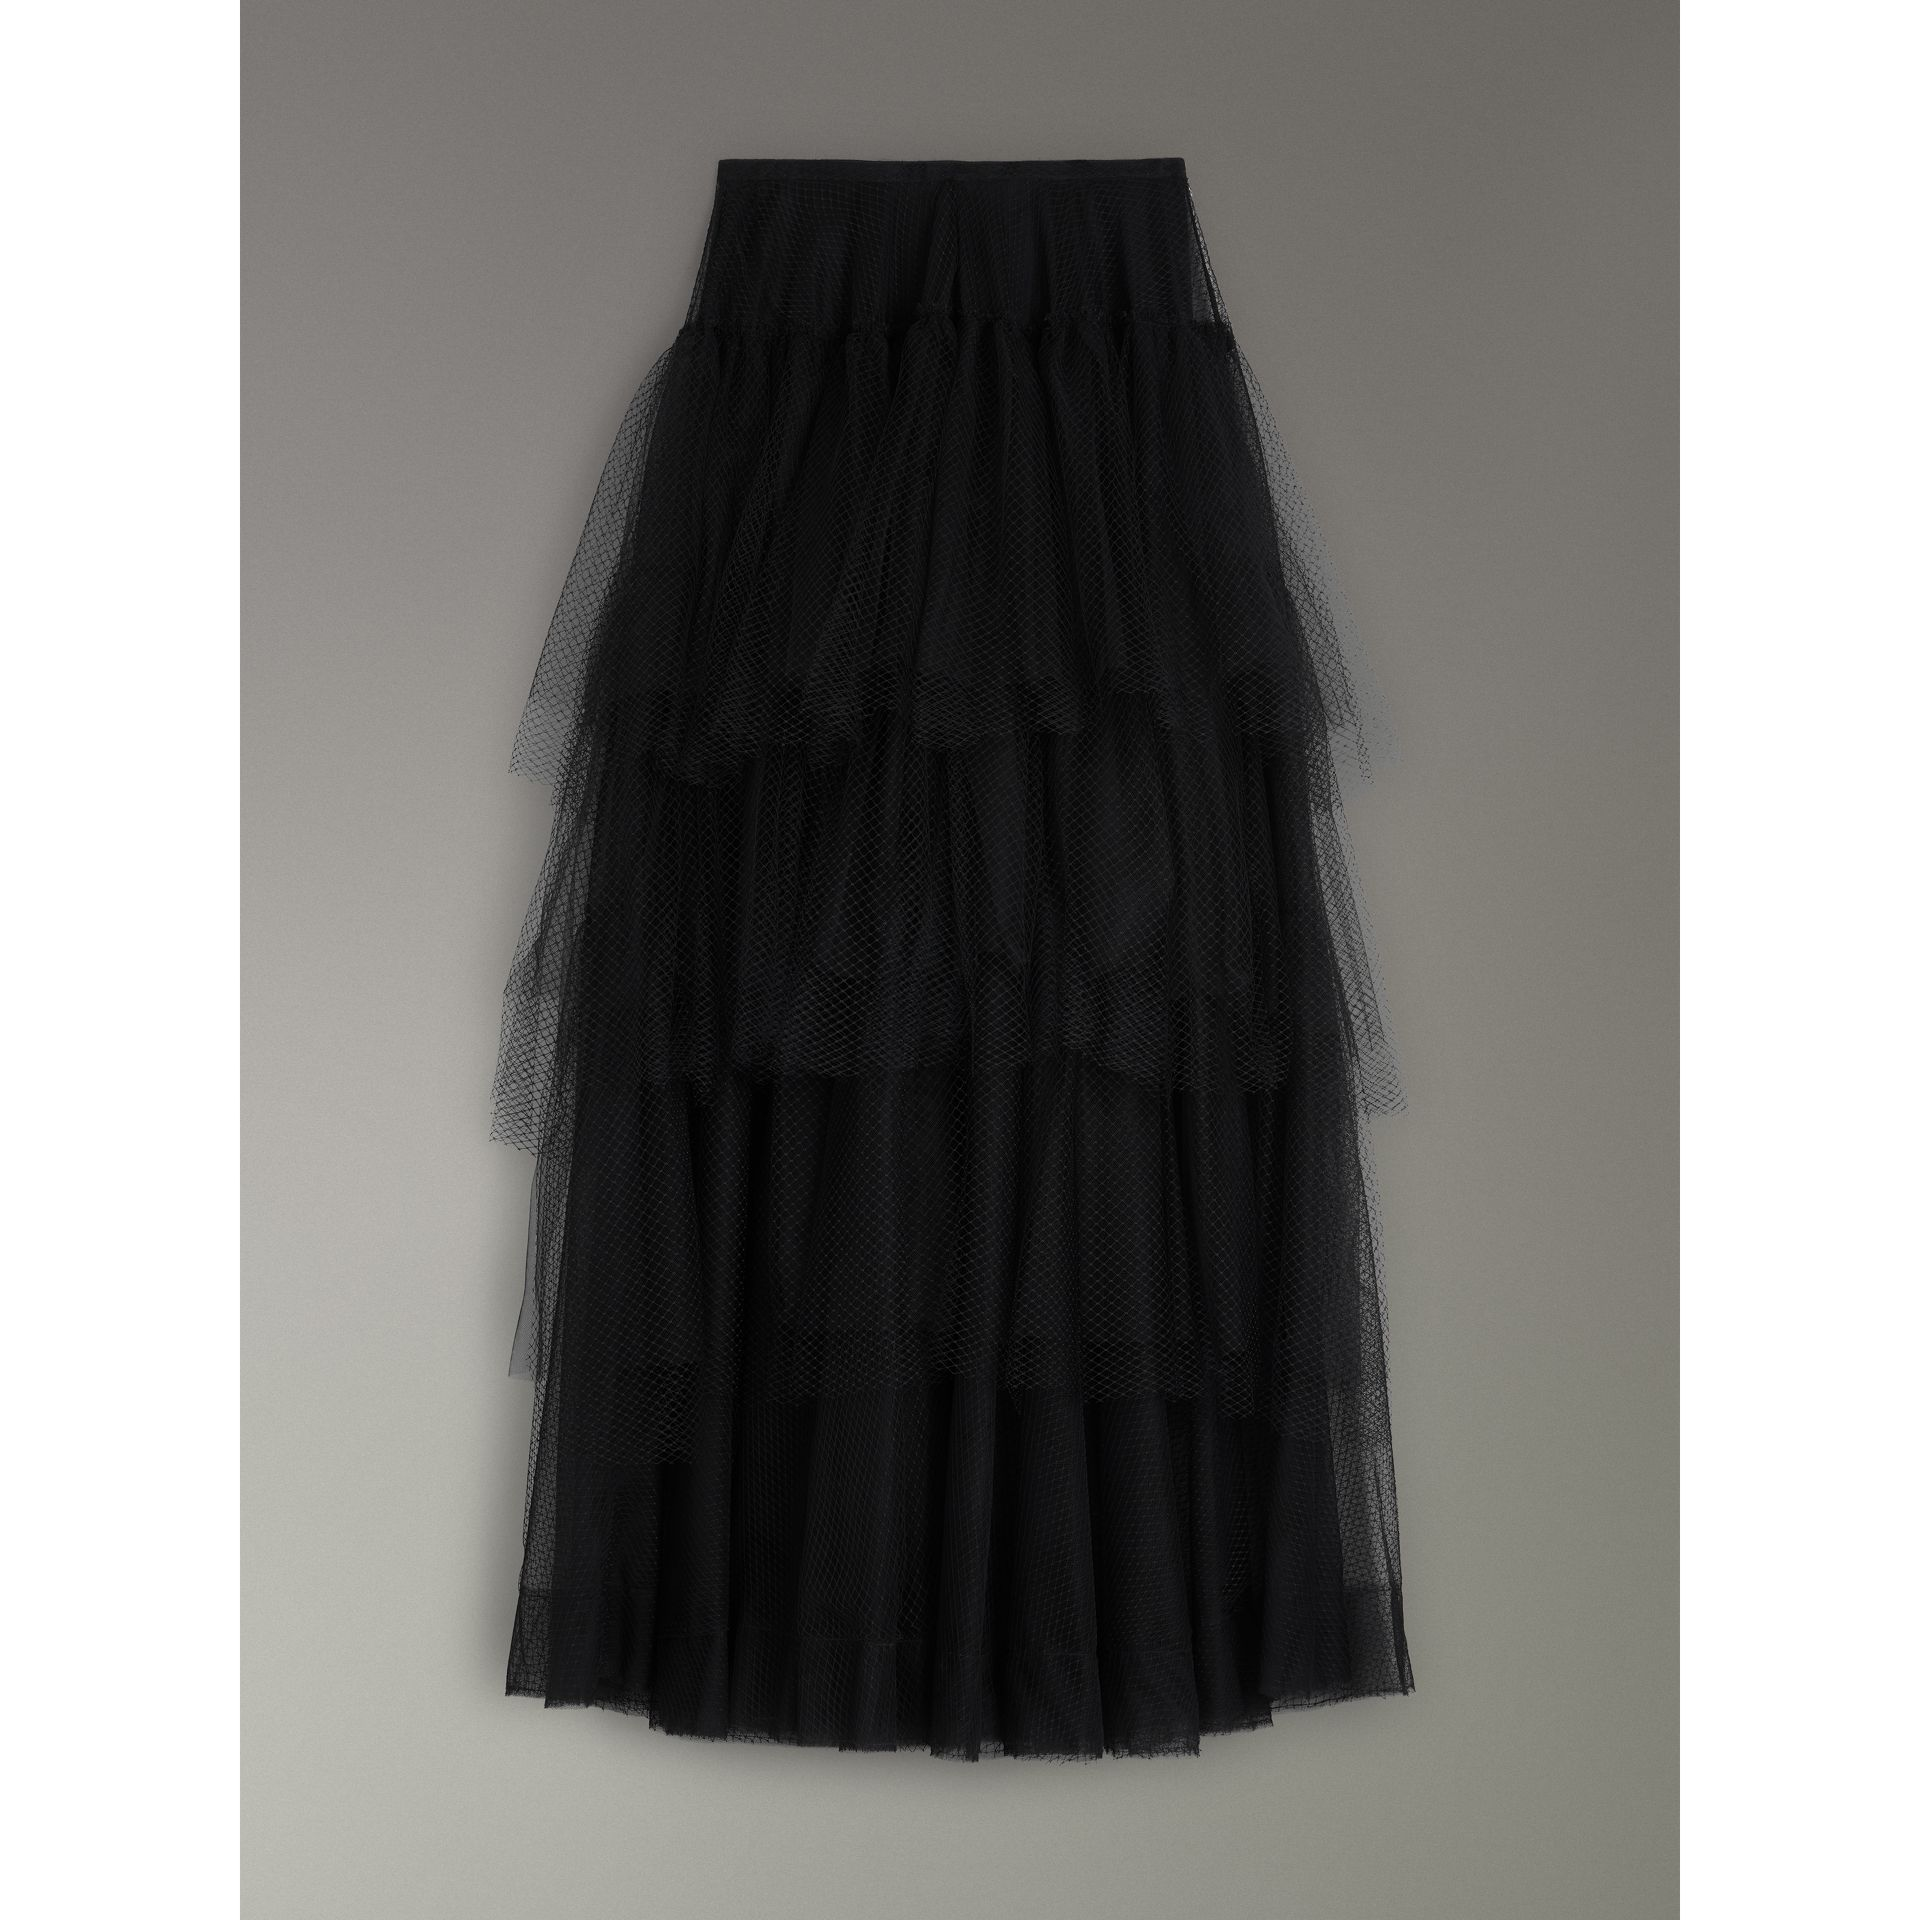 Tiered Open-net Tulle Skirt in Black - Women | Burberry United Kingdom - gallery image 3